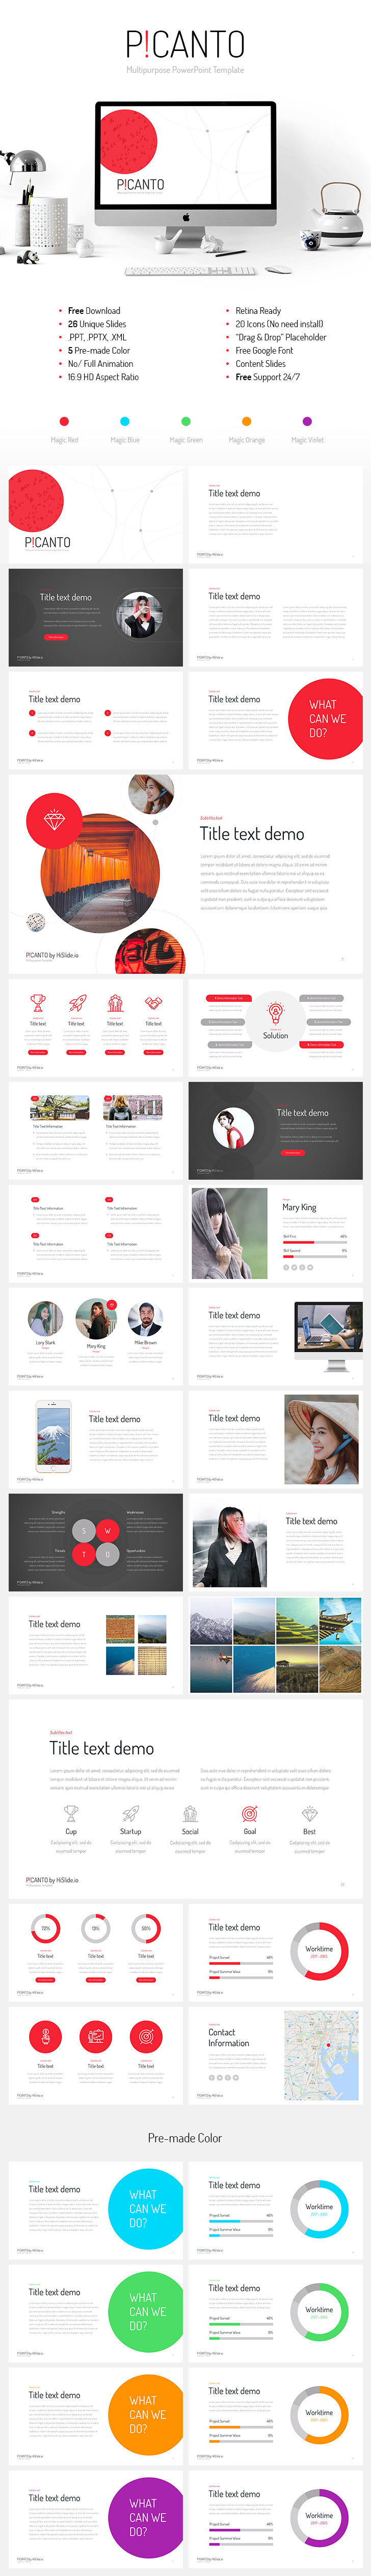 Picanto Ppt Template Free Download Designspiration Pinterest